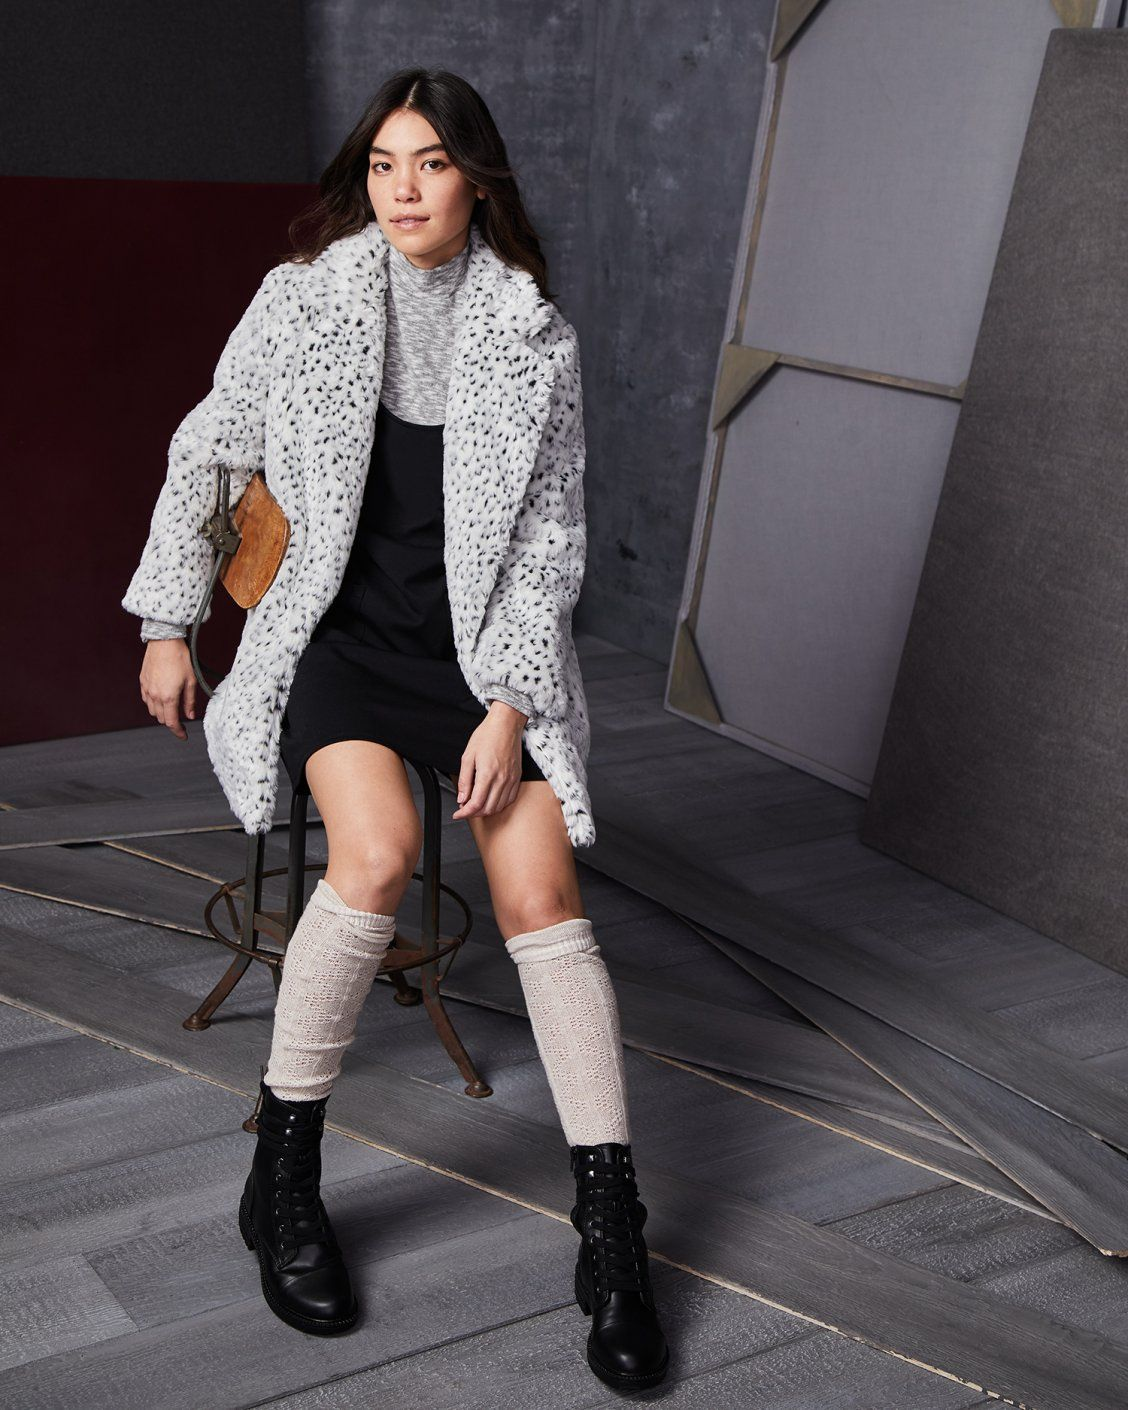 9496094c07 Aplomb in Action Faux-Fur Coat This faux-fur coat shows there s no slowing  down the forward motion of your style evolution! From Jack by BB Dakota